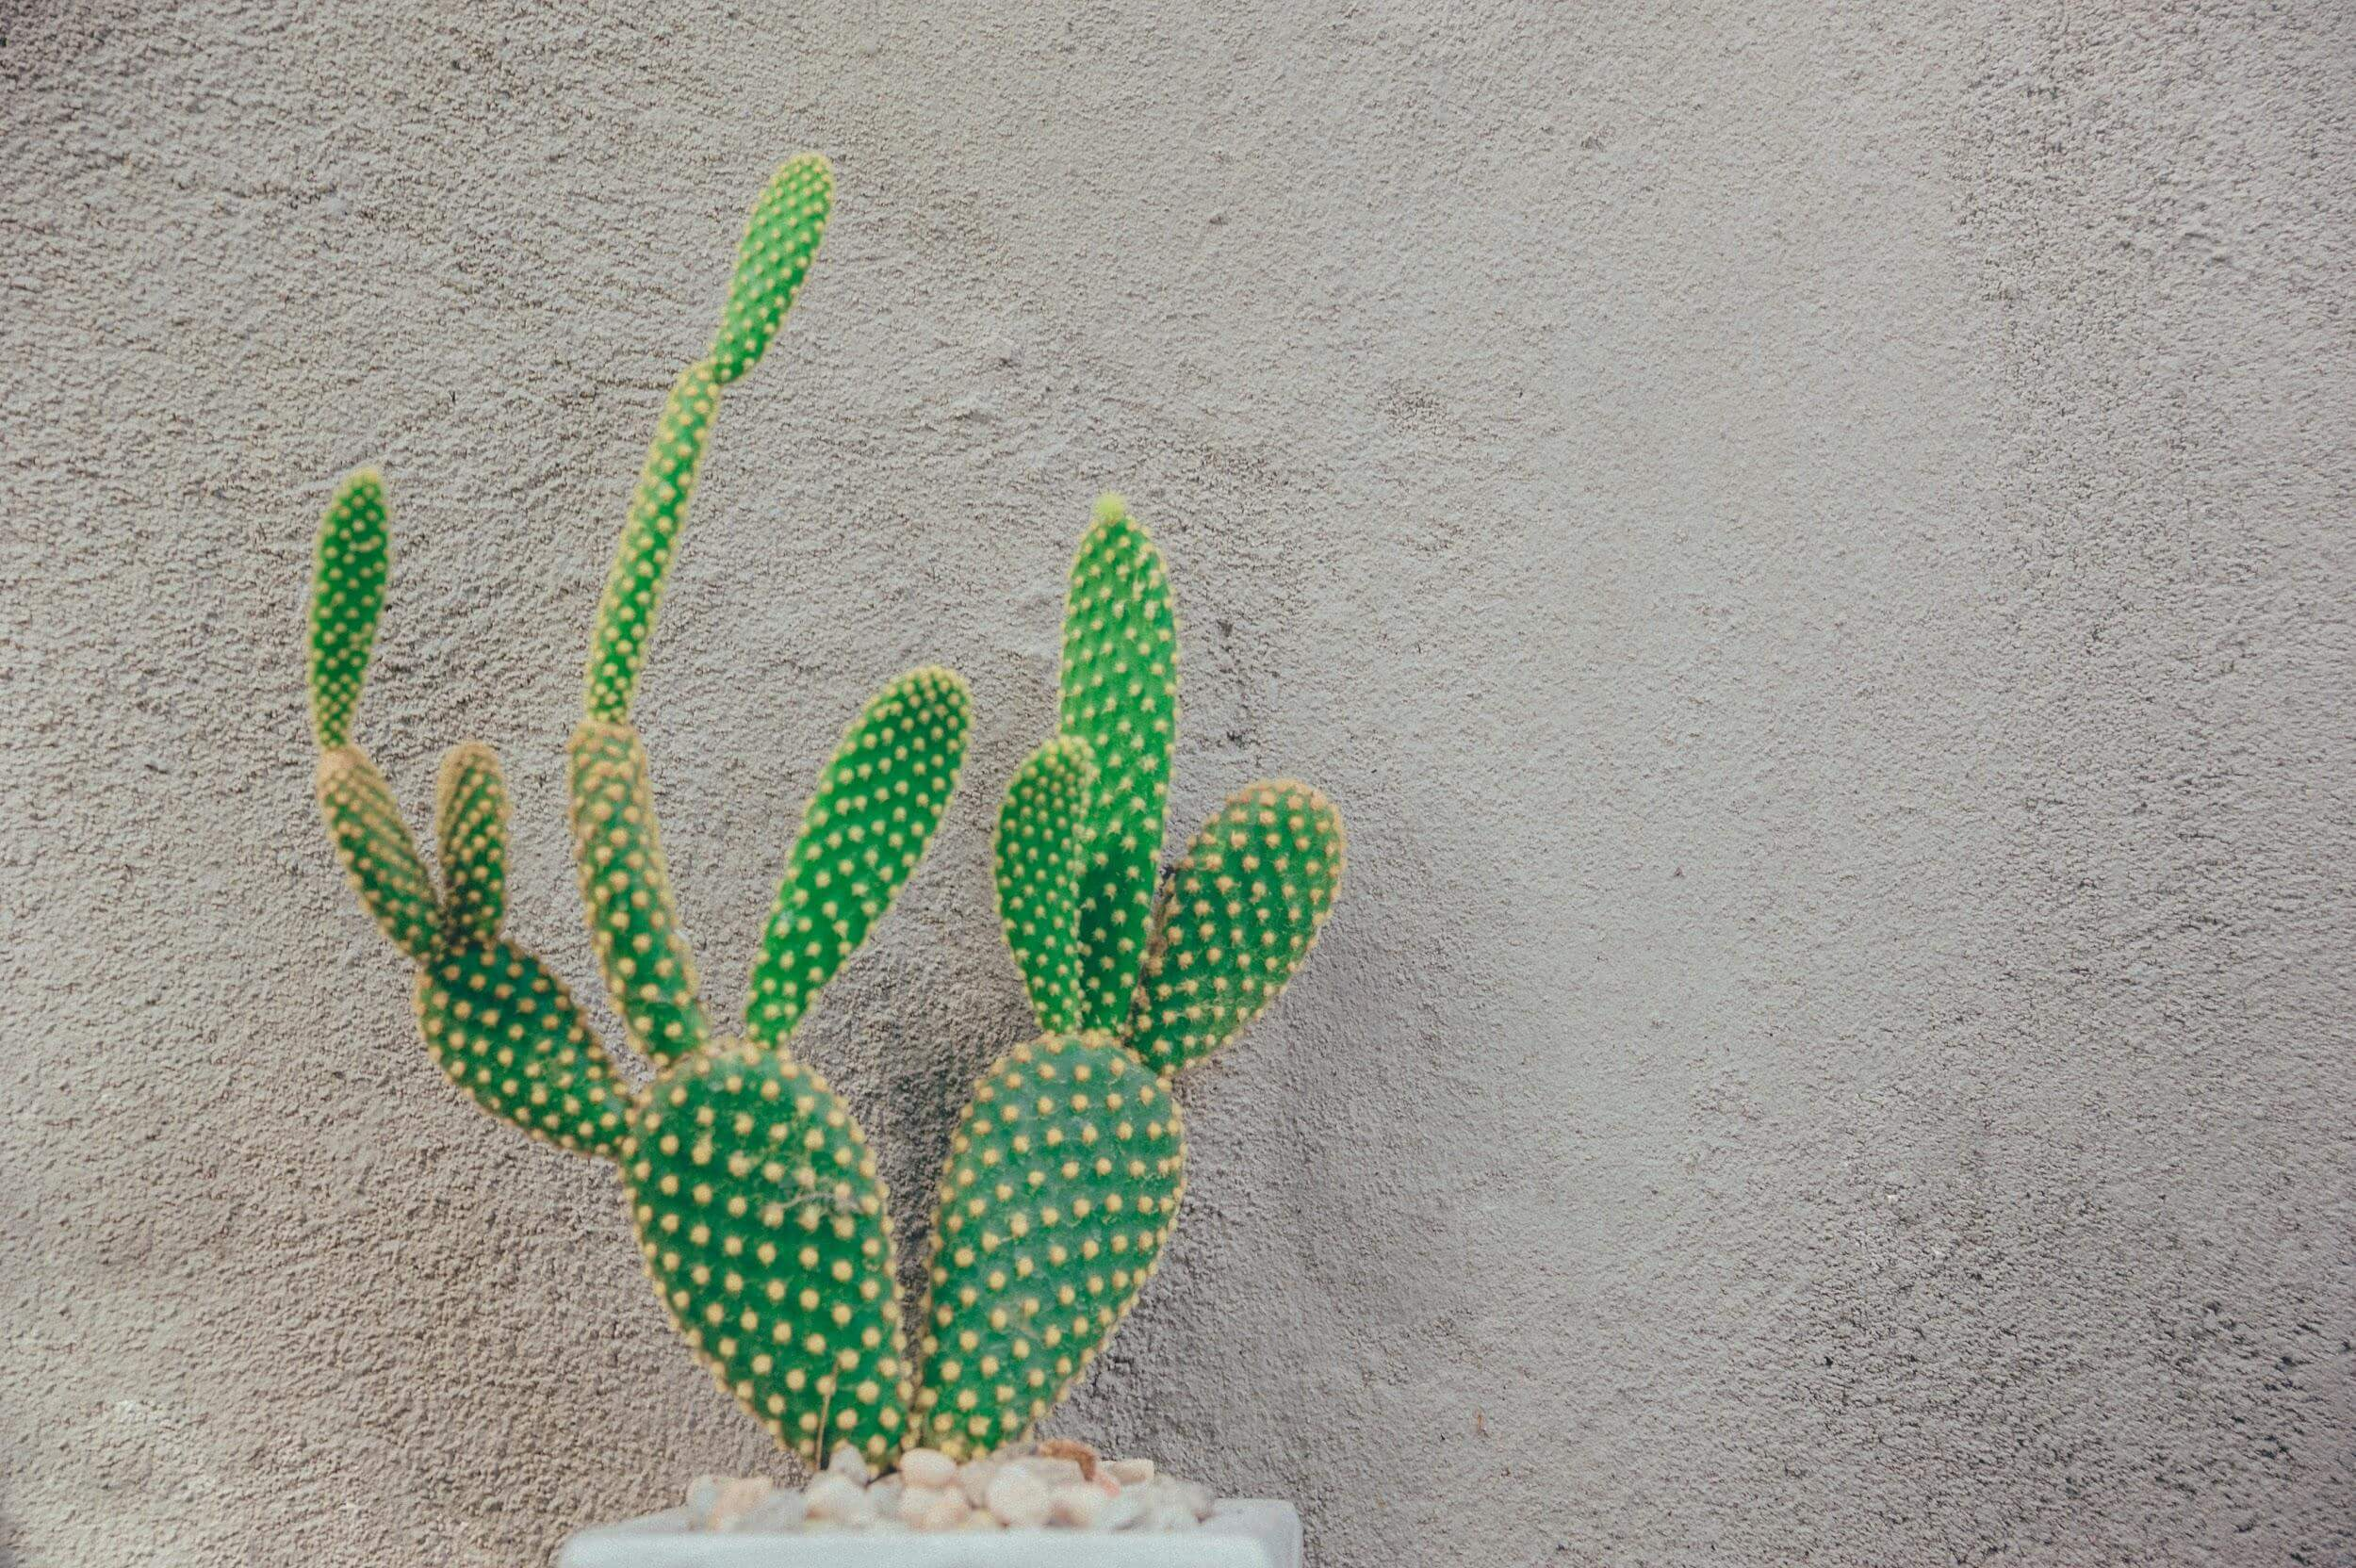 How to Take Care of a Cactus Plant